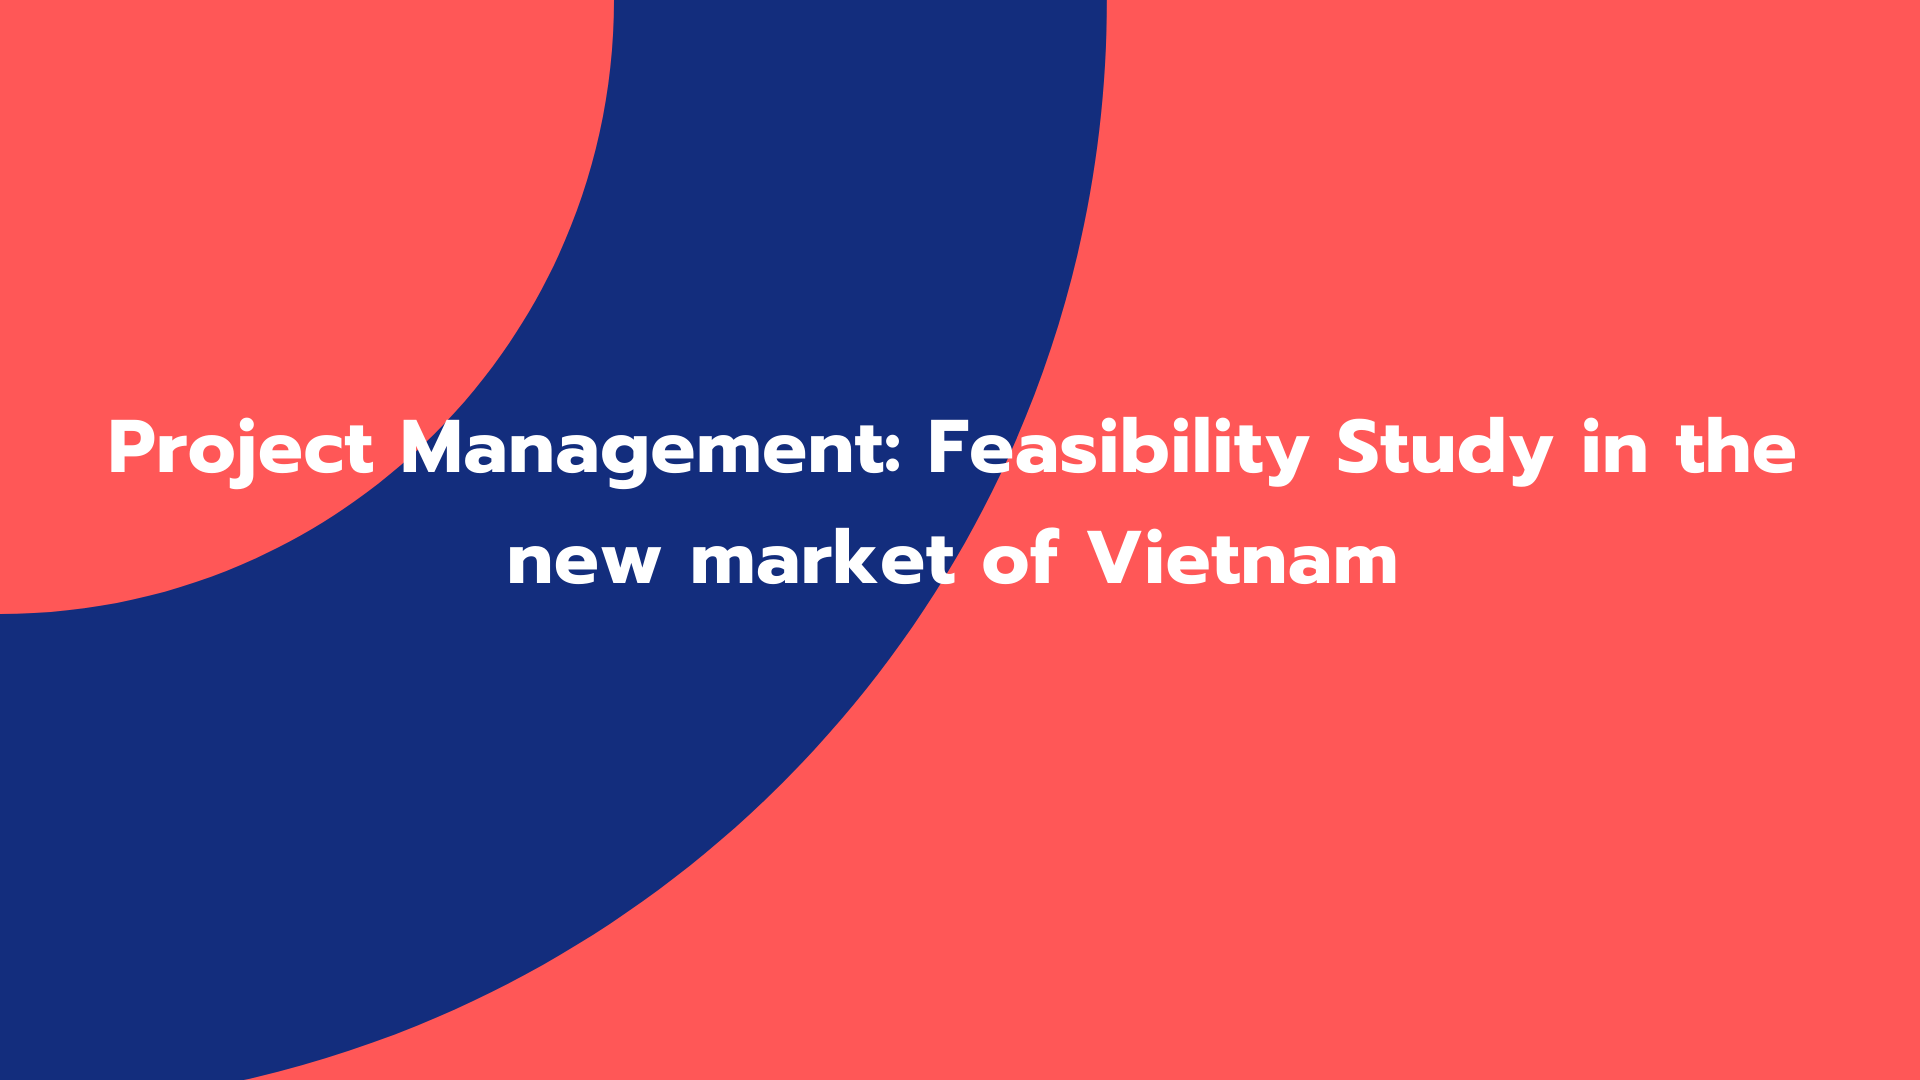 Project Management: Feasibility Study in the new market of Vietnam